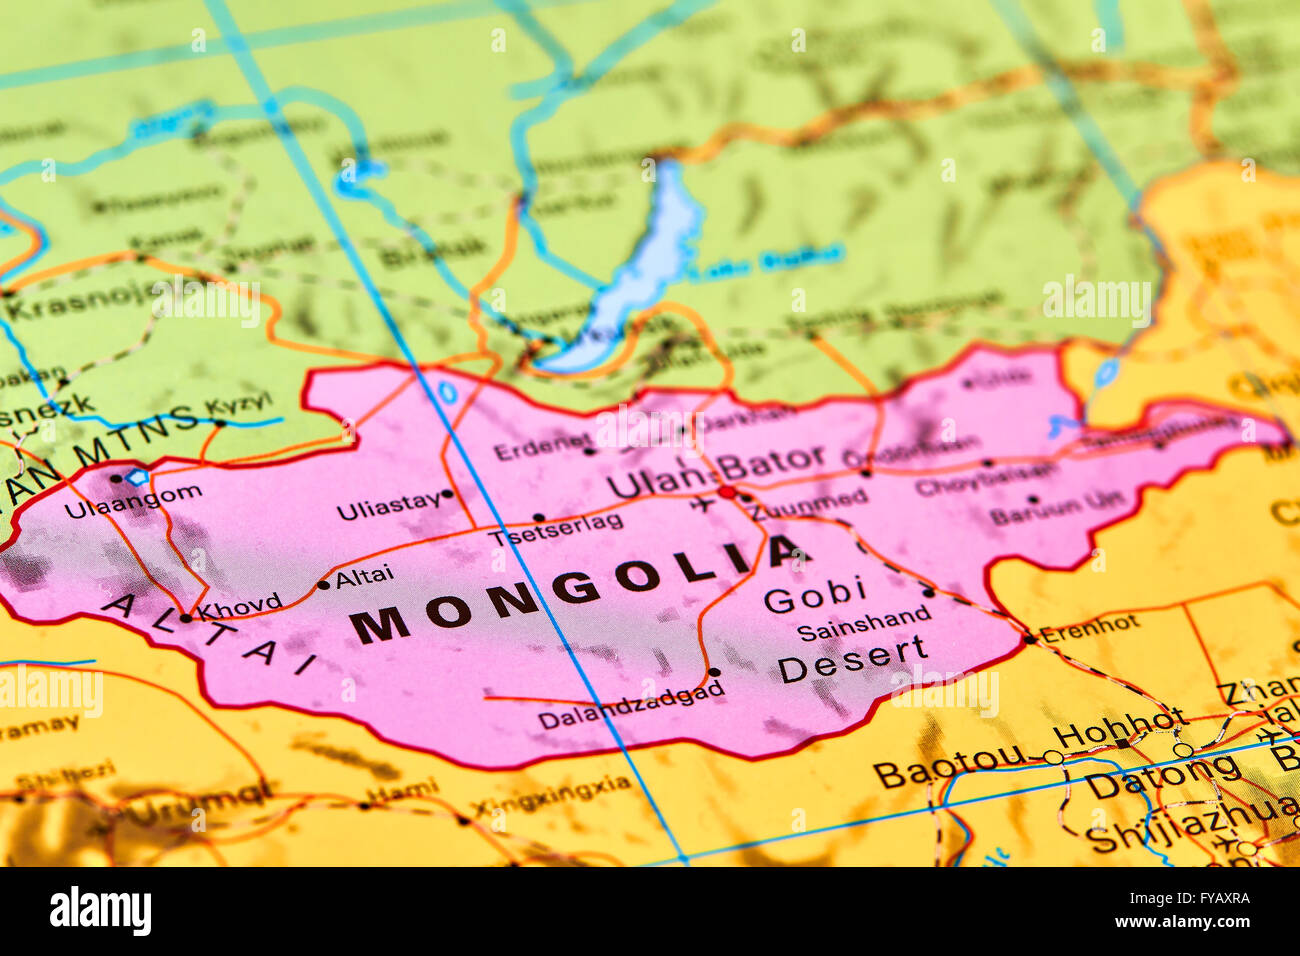 Mongolia country in asia on the world map stock photo 102888110 mongolia country in asia on the world map gumiabroncs Images